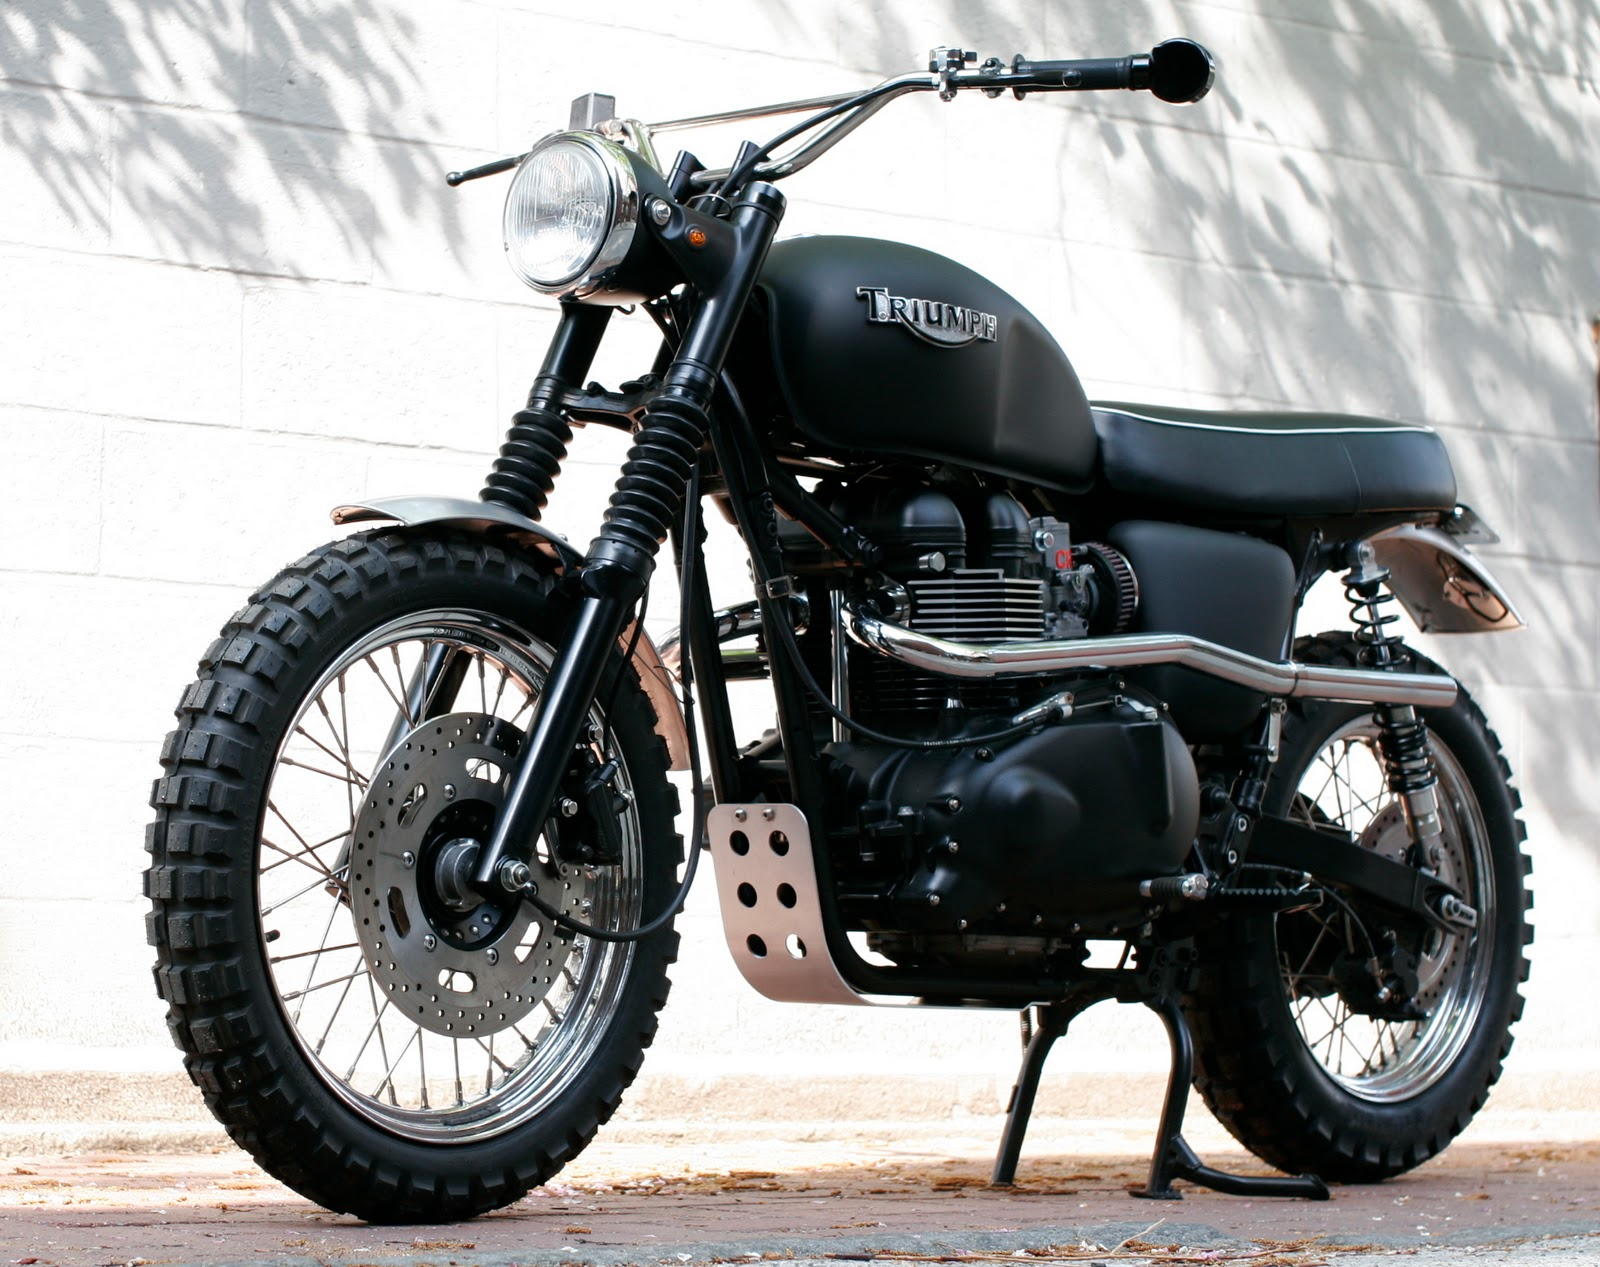 Scrambler Motorcycle Photo Of The Day Page 3